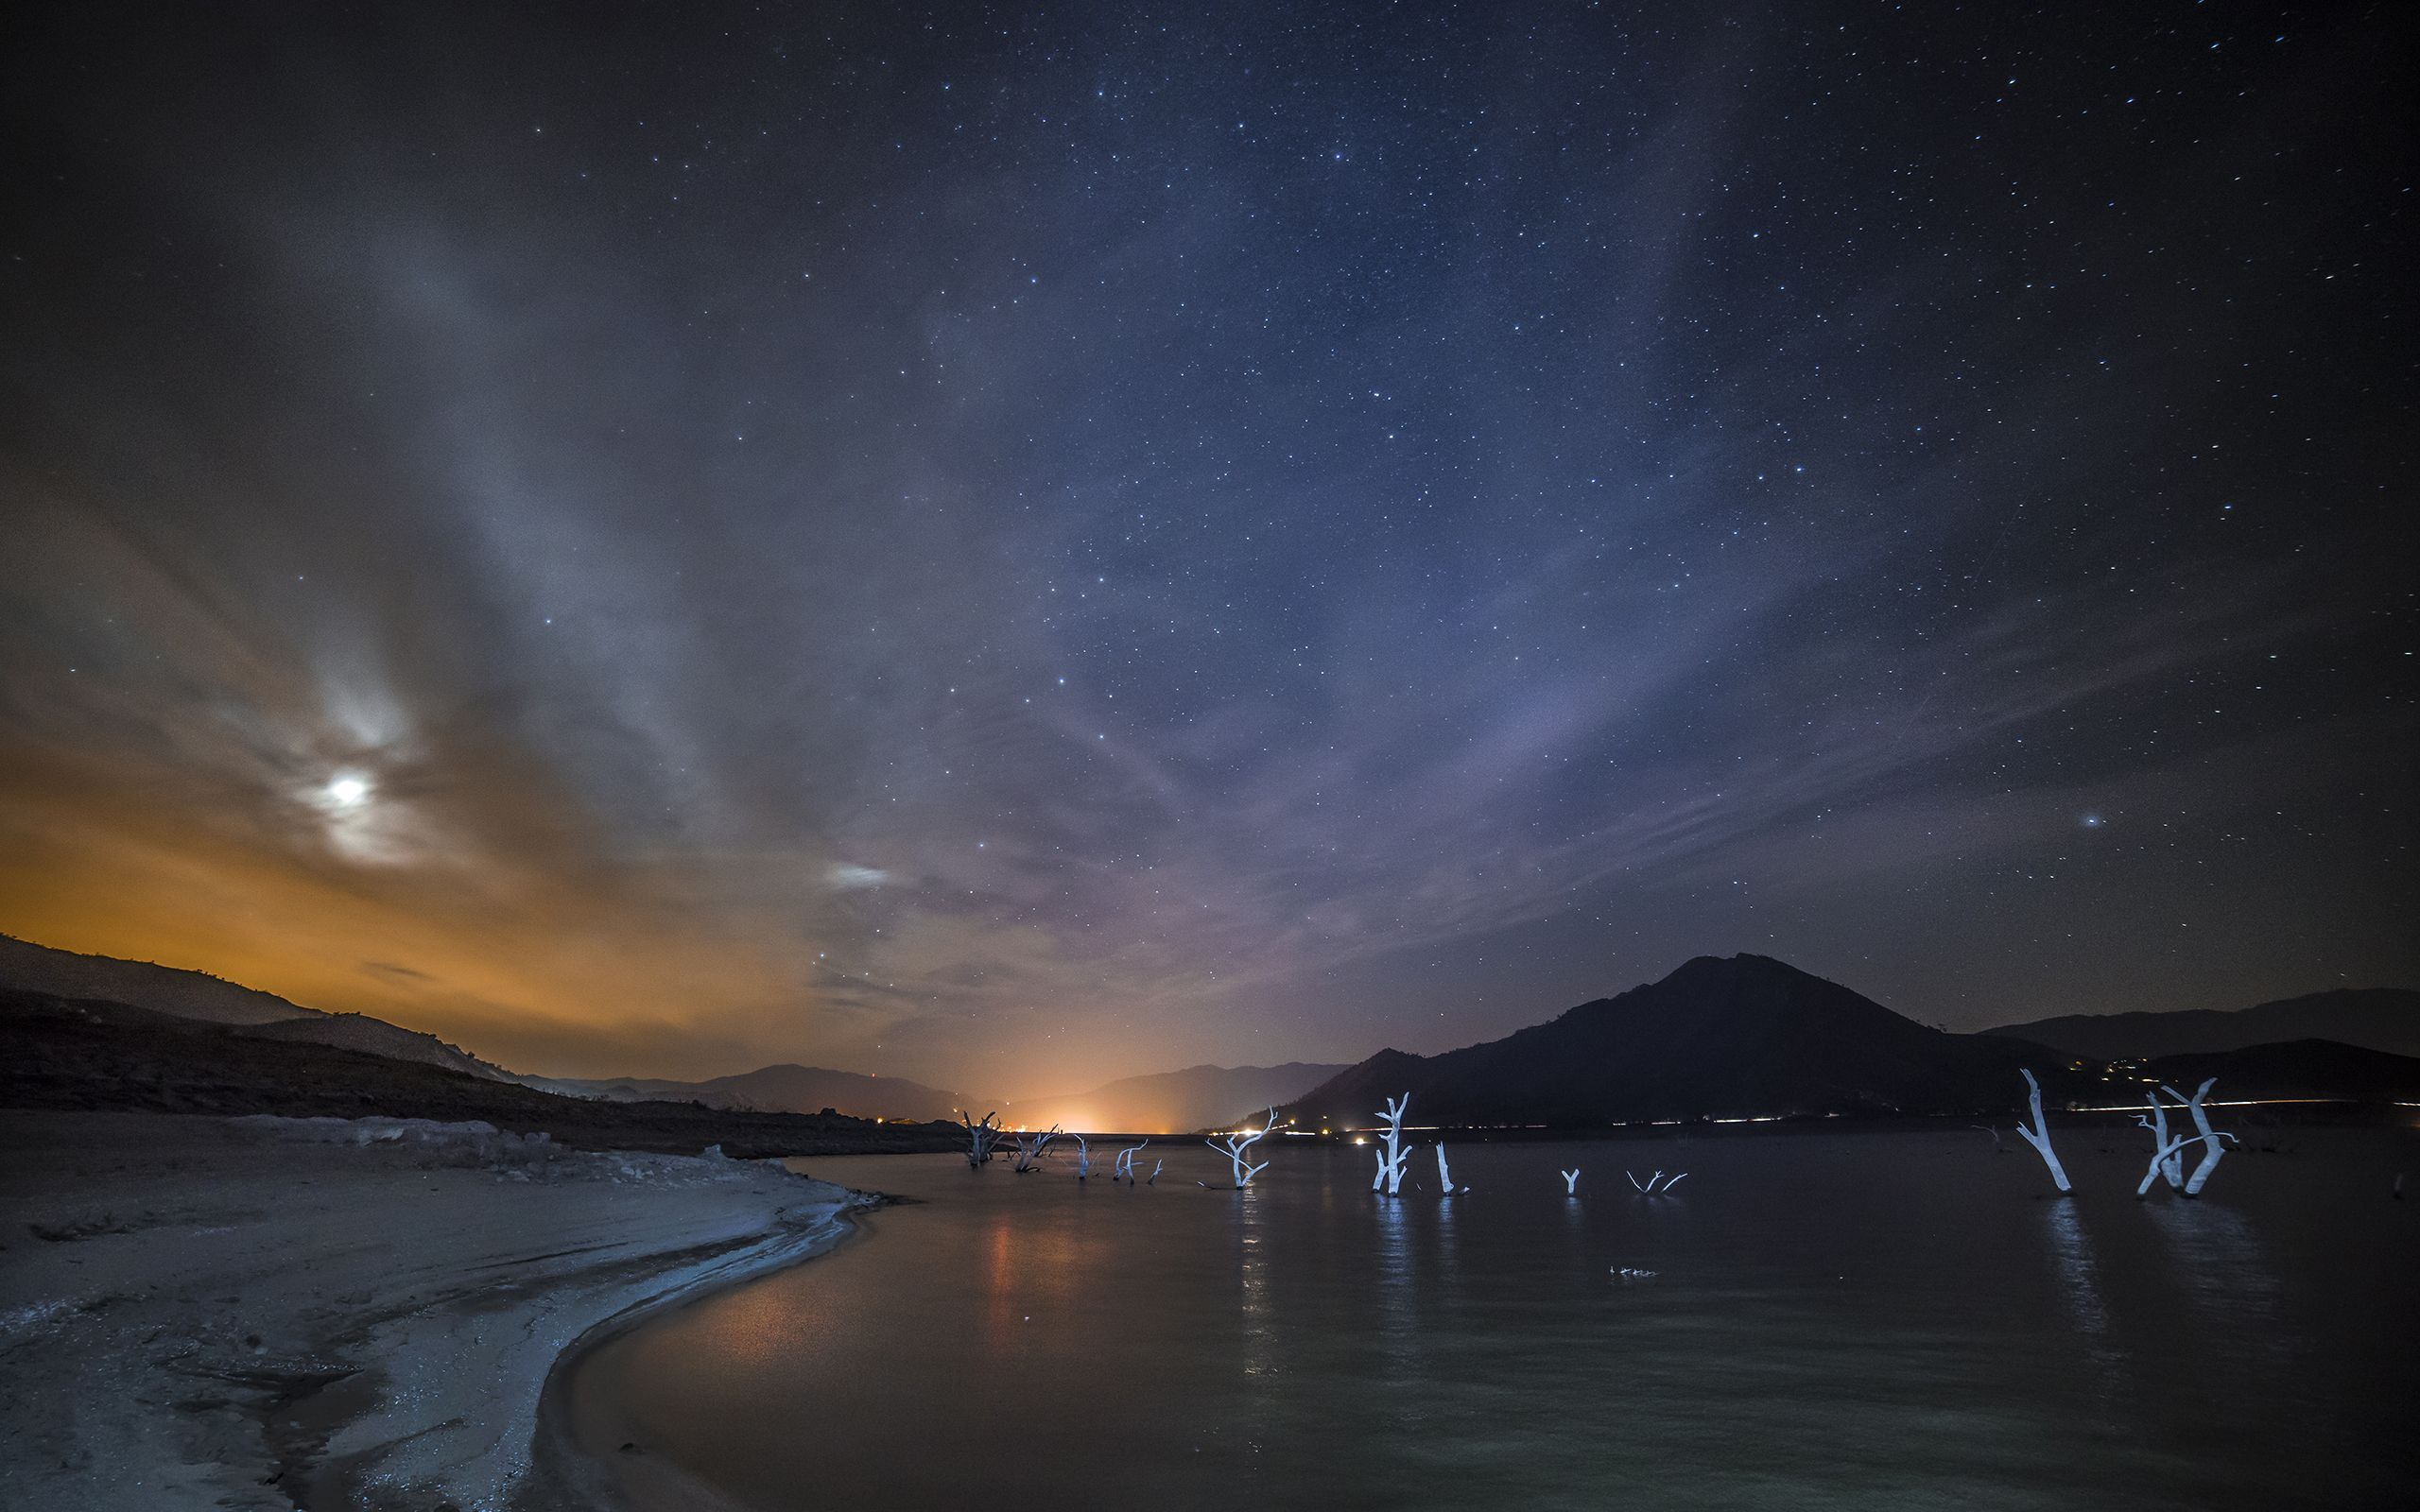 night sky wallpapers full hd wallpaper search page 2 night sky above 2560x1600